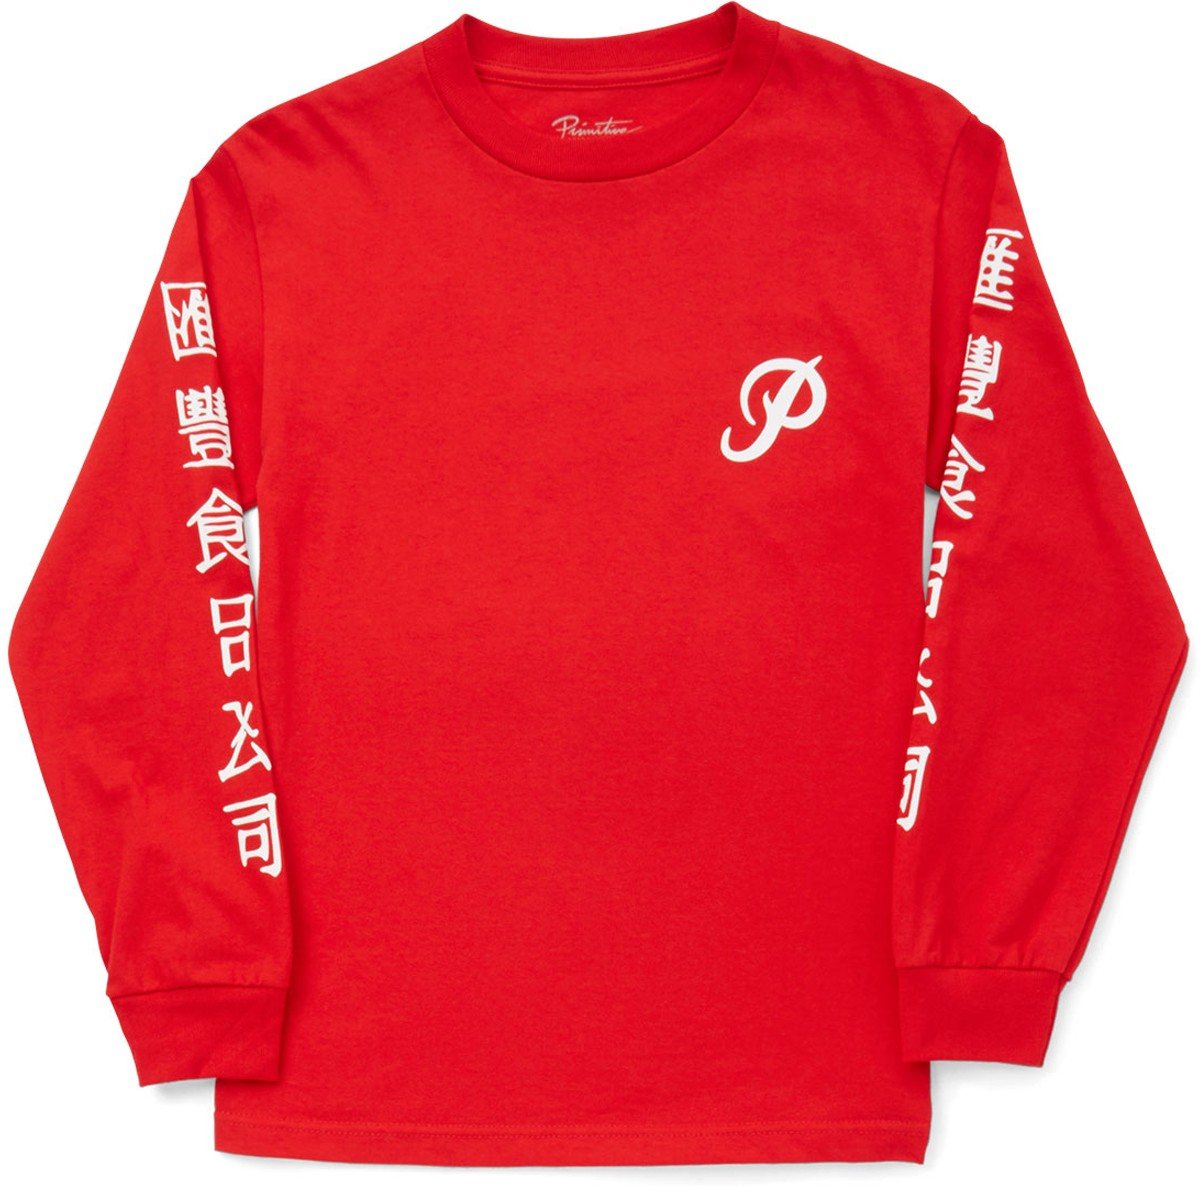 ca8619d3e Primitive x Huy Fong Foods Long Sleeve T-Shirt - Red